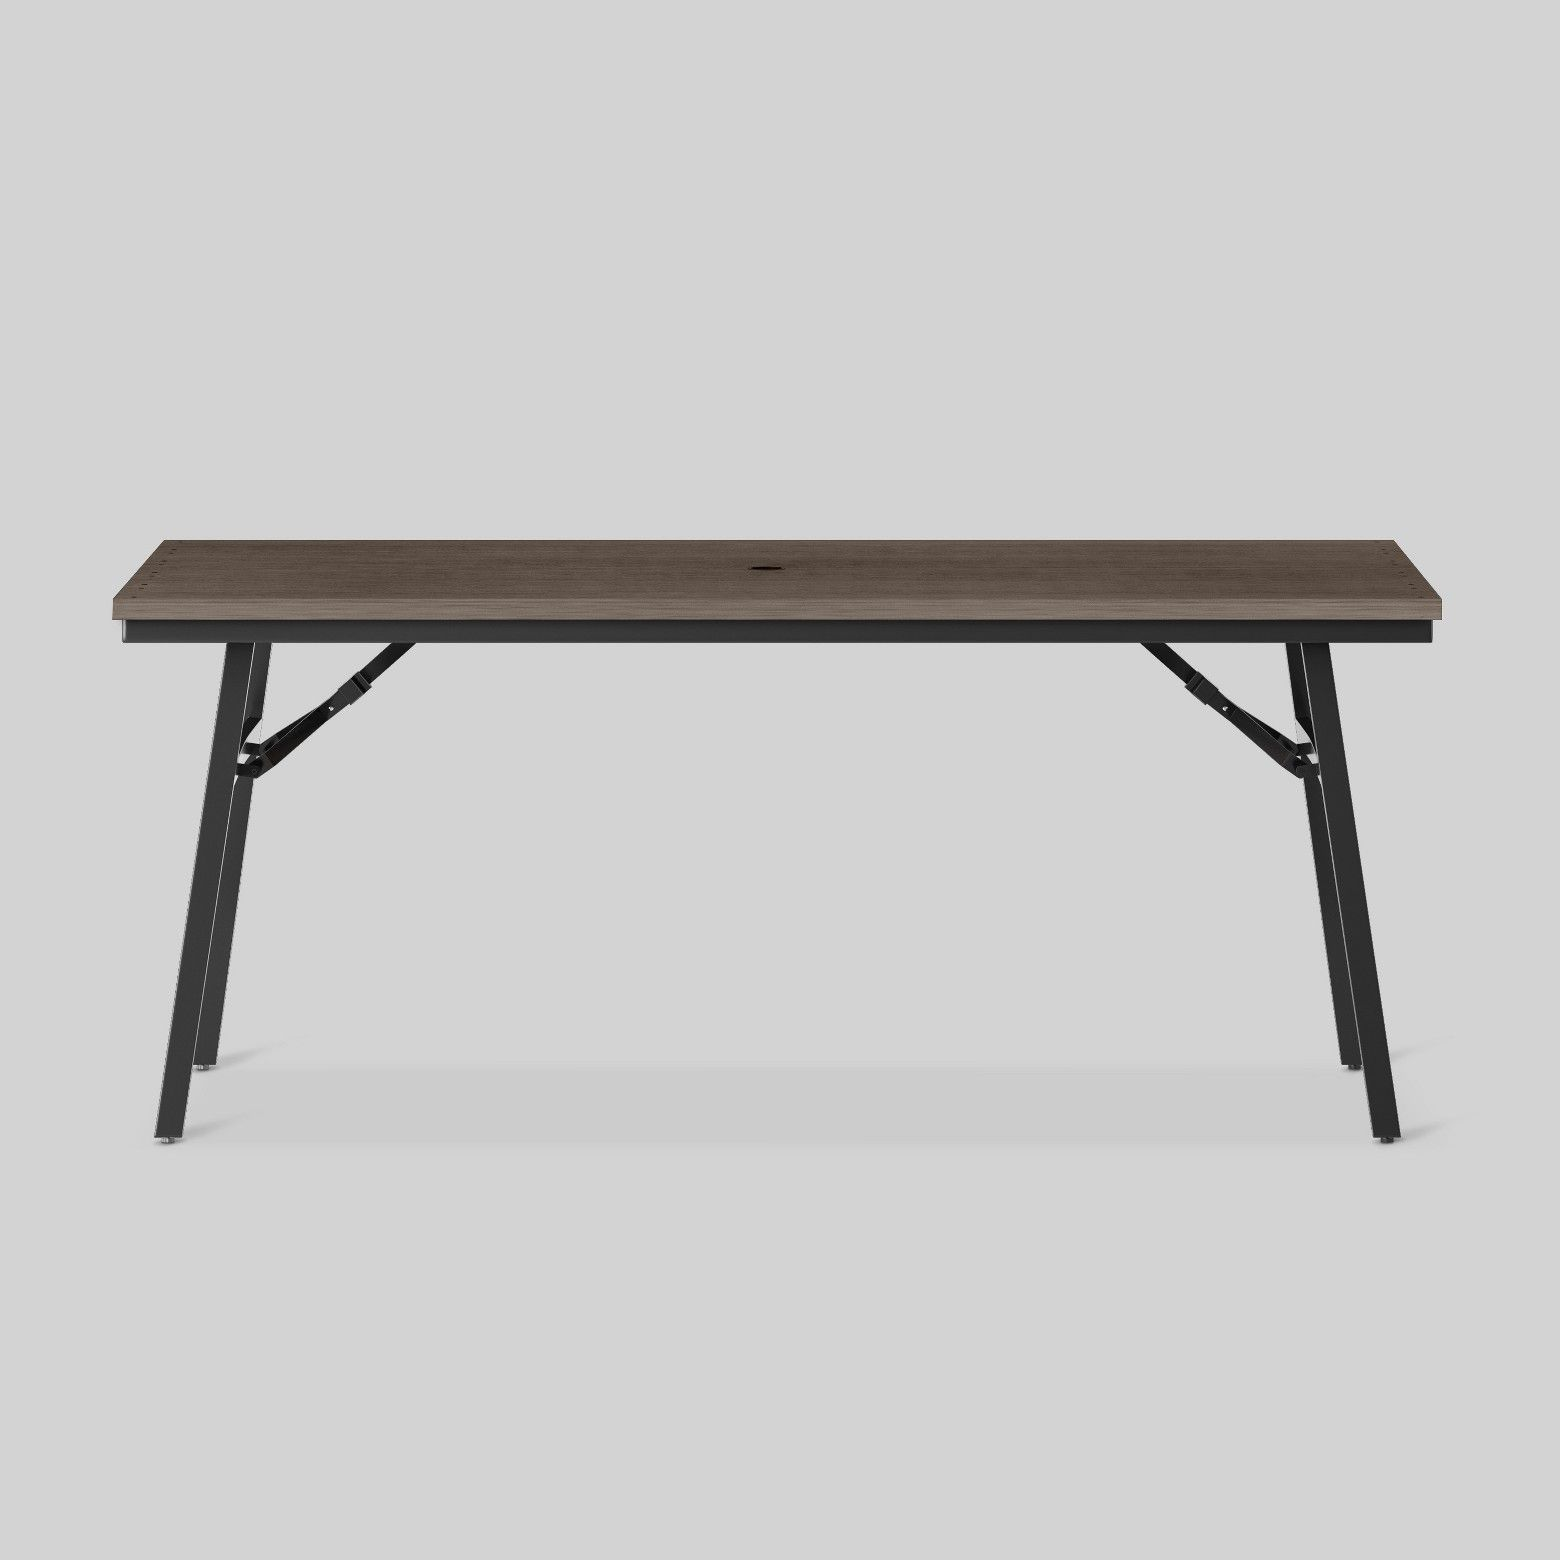 Mantega Faux Wood Folding Patio Dining Table Project 62™ Tar